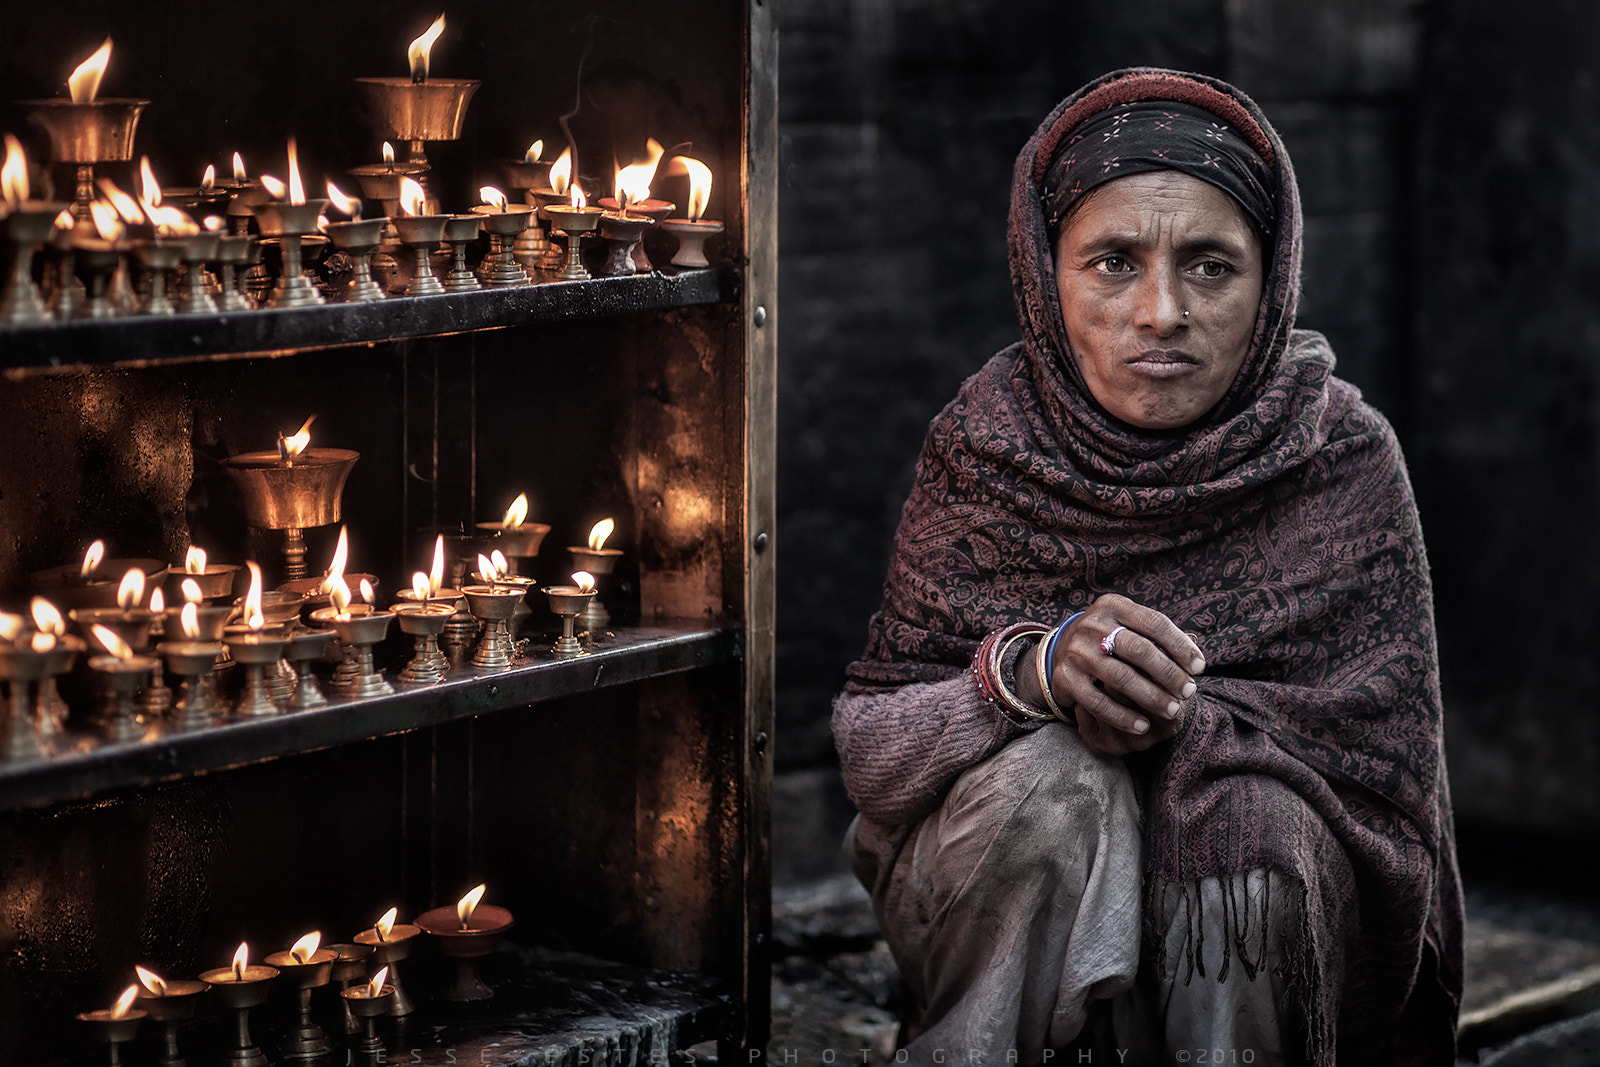 Photograph Butter Lamps - Kathmandu, Nepal by Jesse Estes on 500px